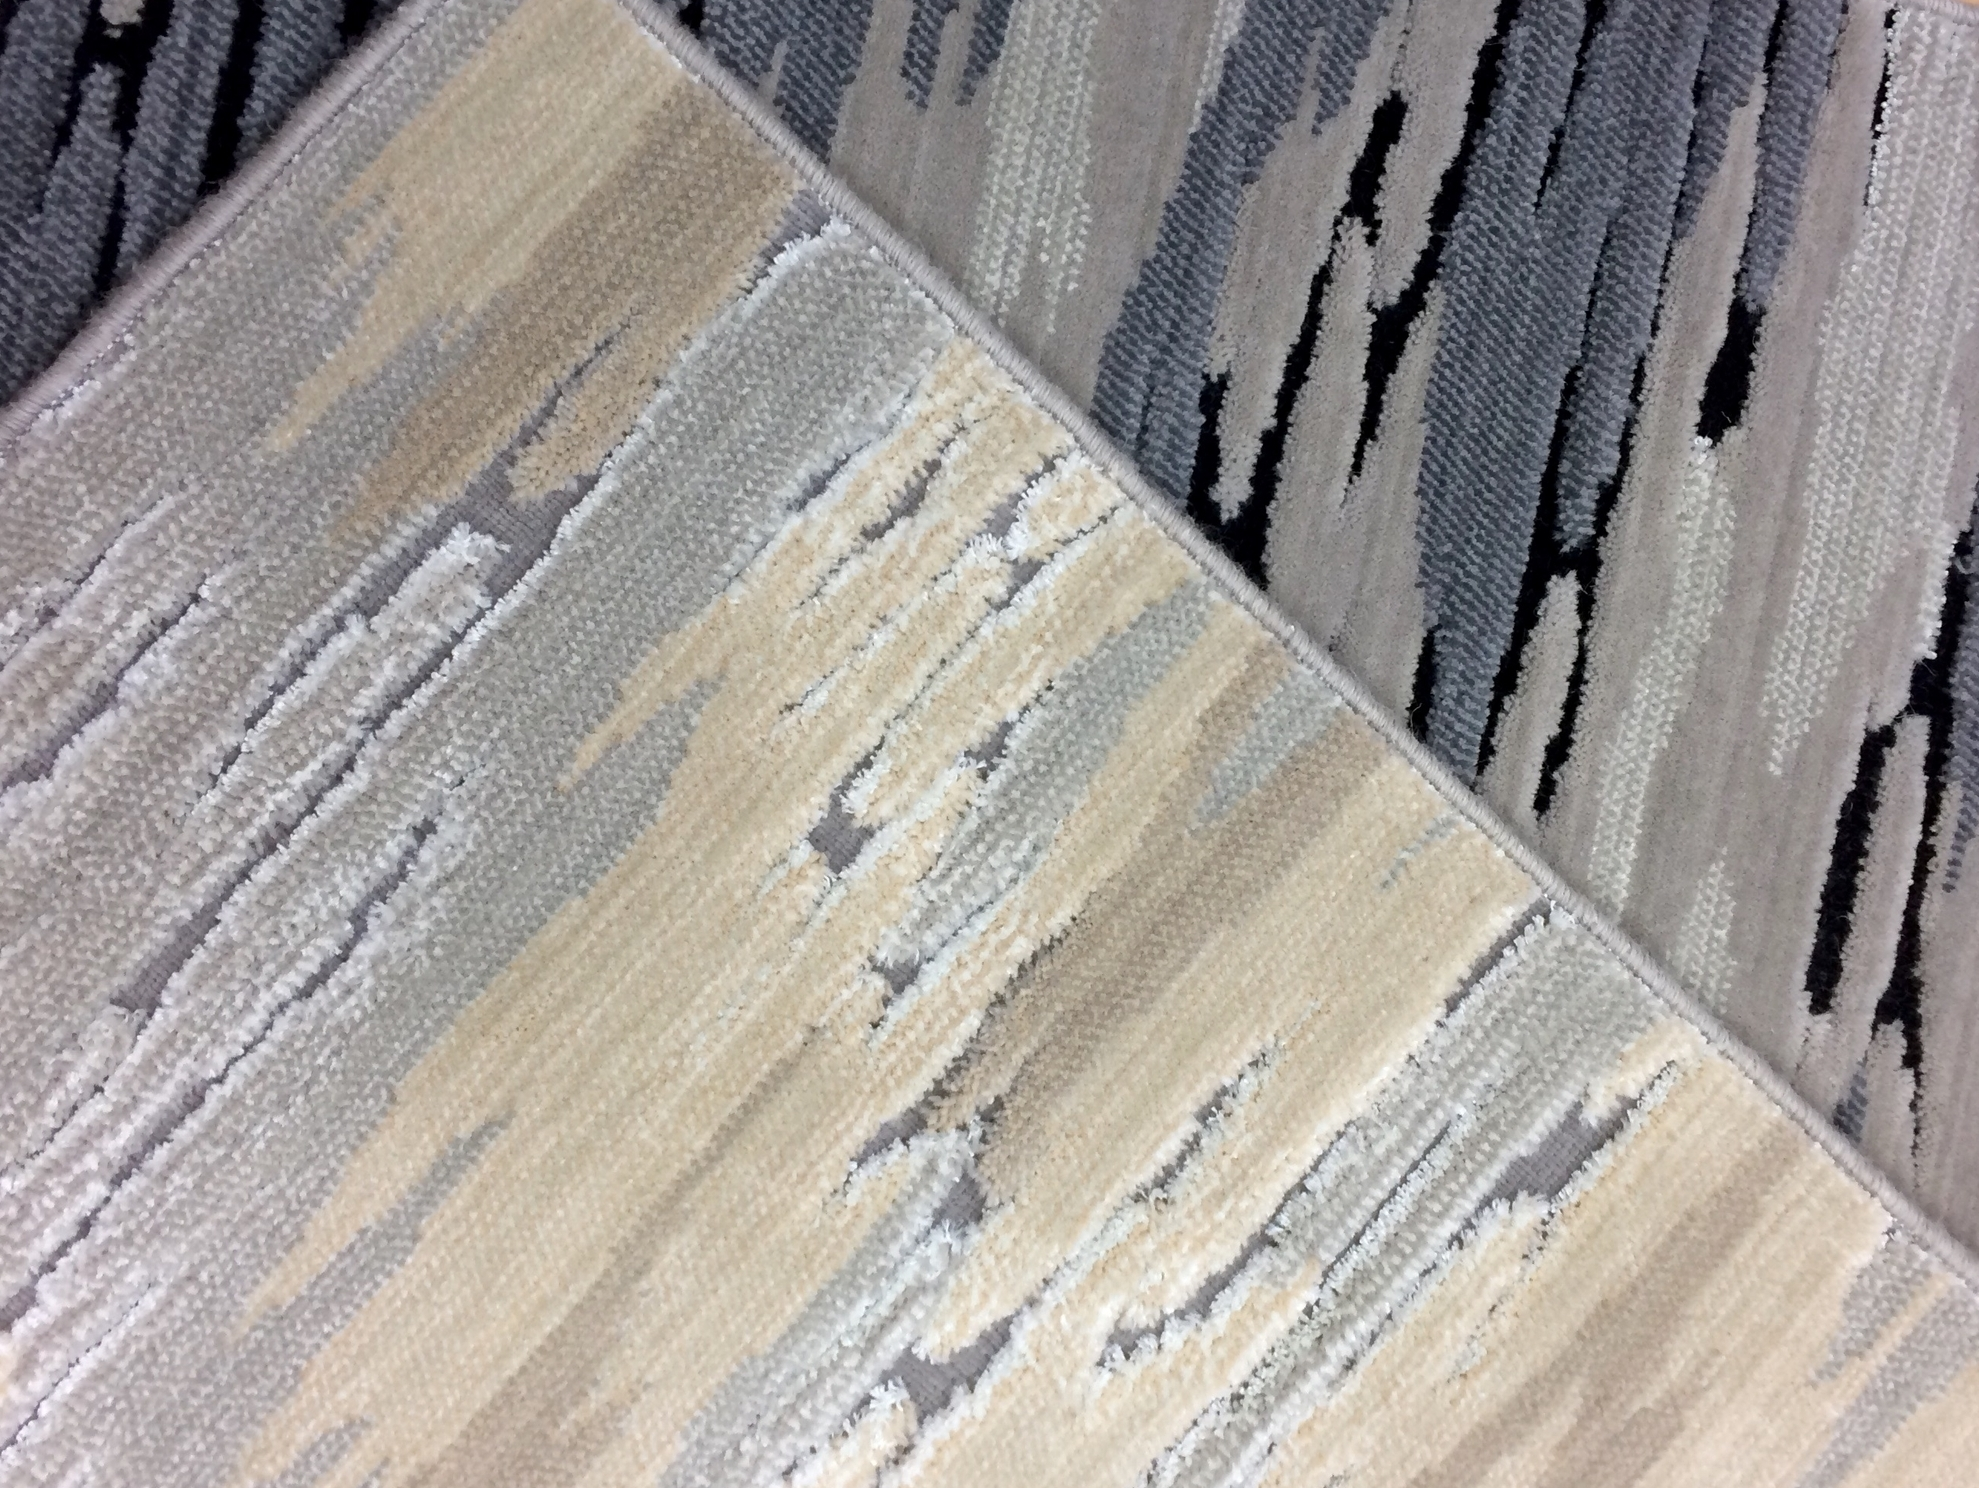 Riptide high-low textured carpet sample with shine accents